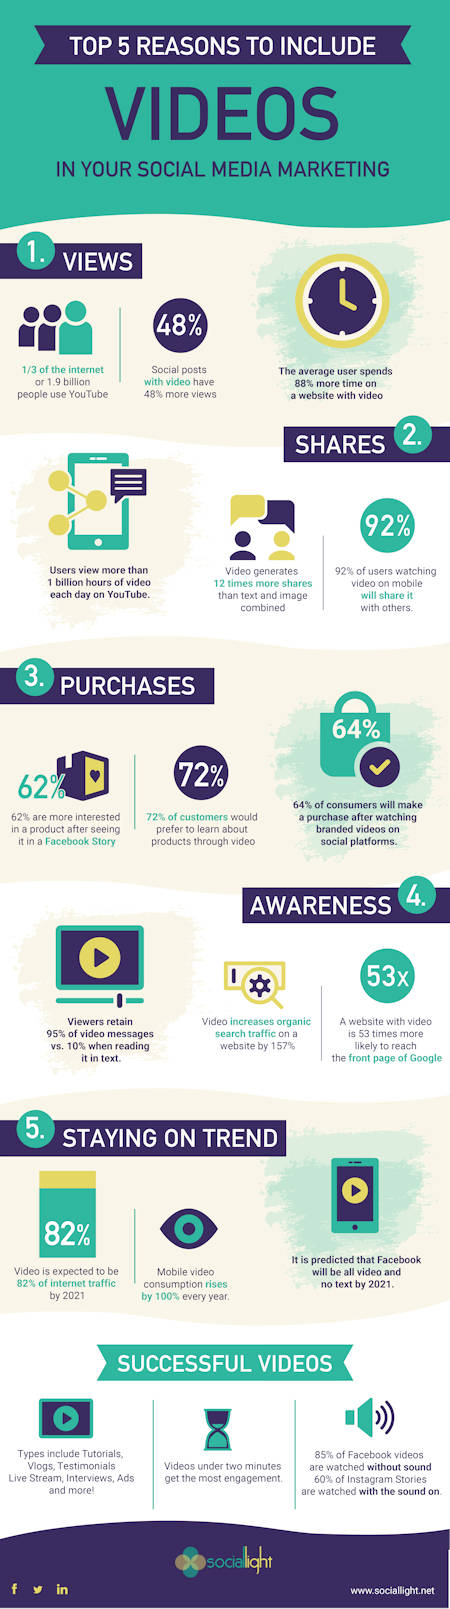 infographic: top 5 reasons to include videos in your social media marketing strategy